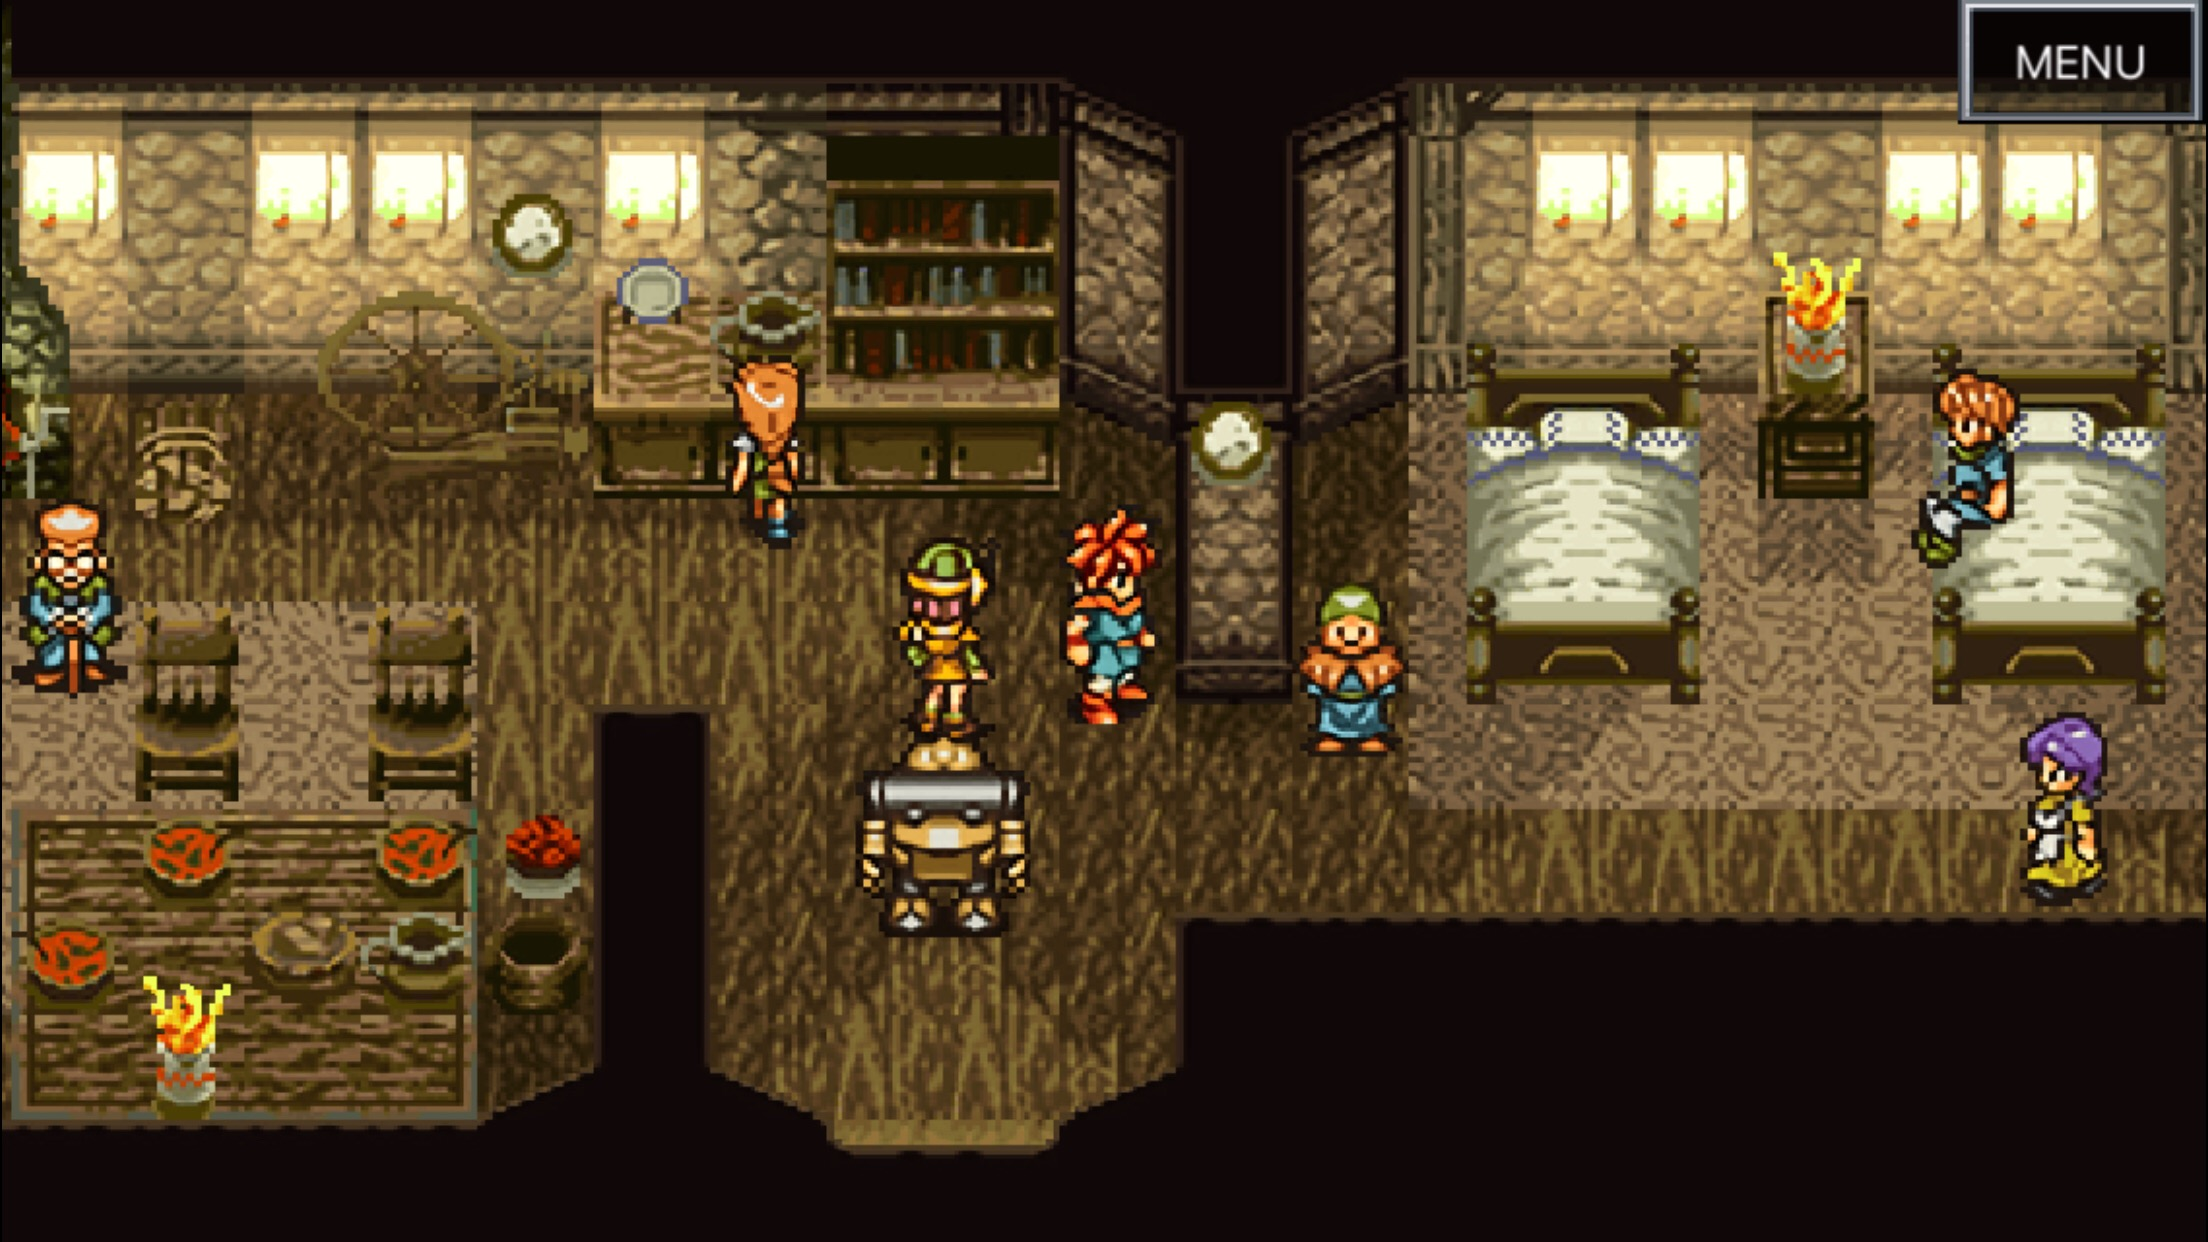 The New 'Chrono Trigger' Isn't a Mobile Port, Everyone – TouchArcade